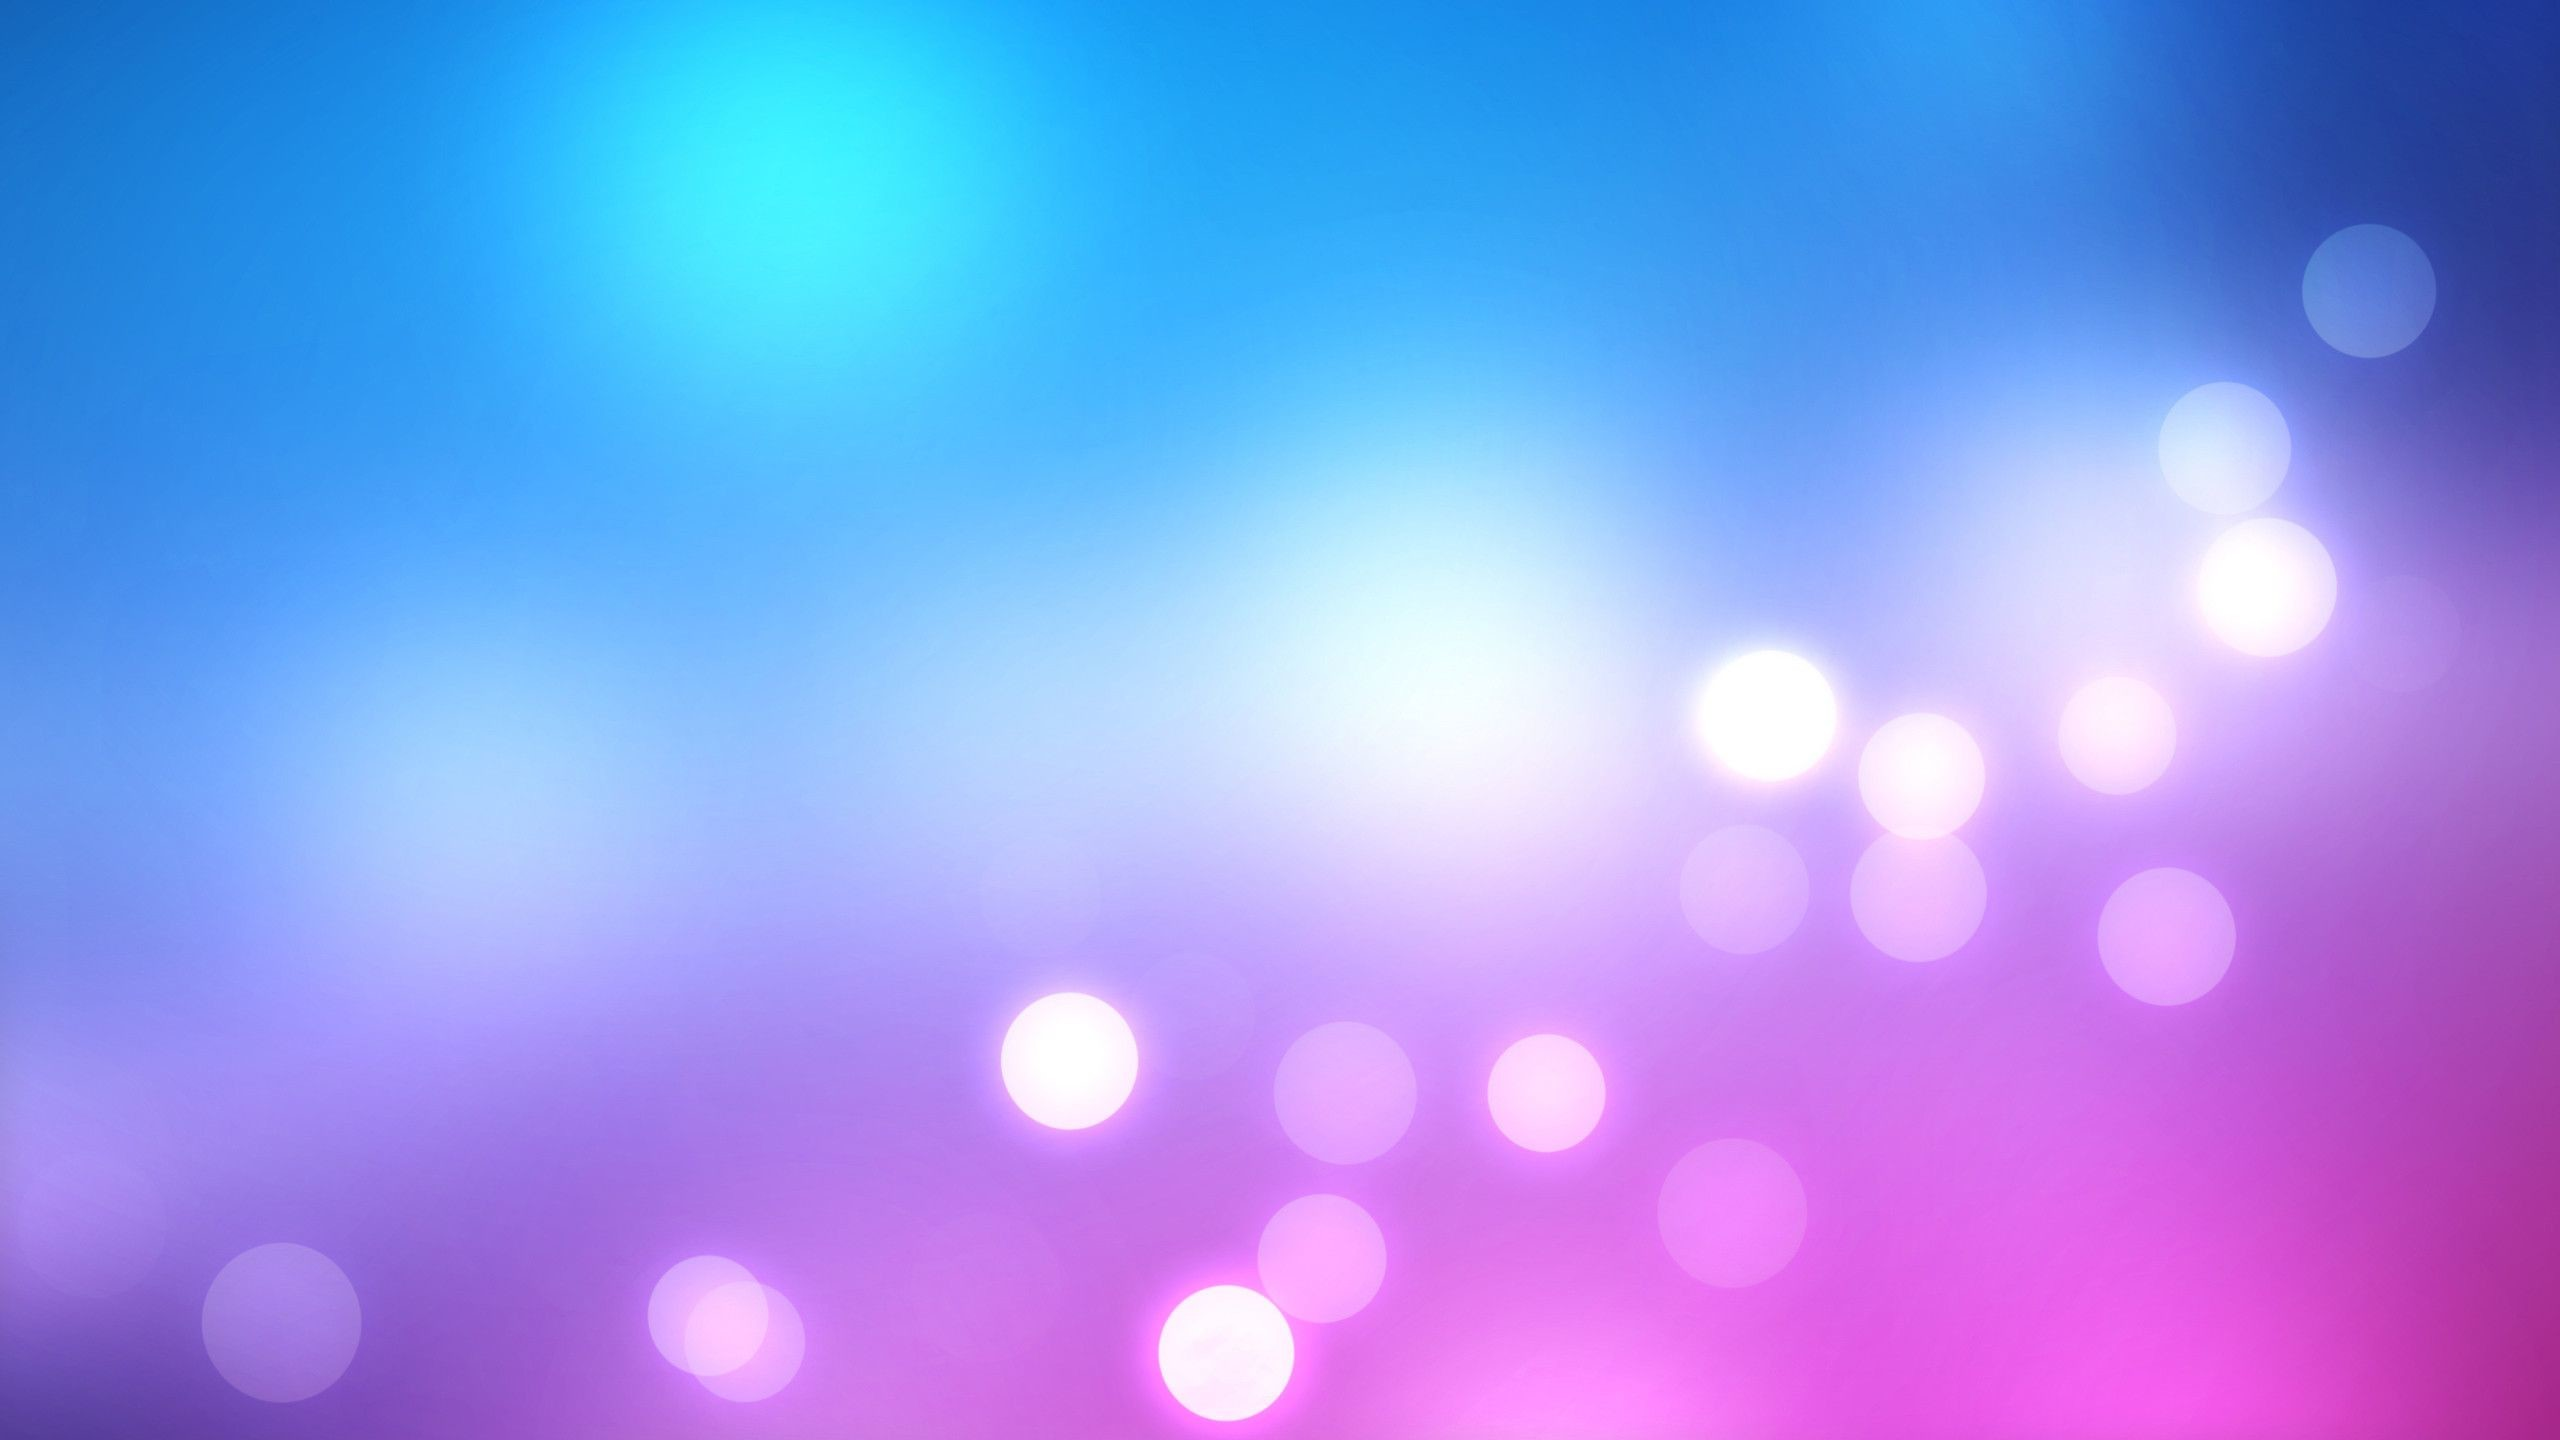 2560x1440 Wallpapers For > Light Blue And Purple Backgrounds